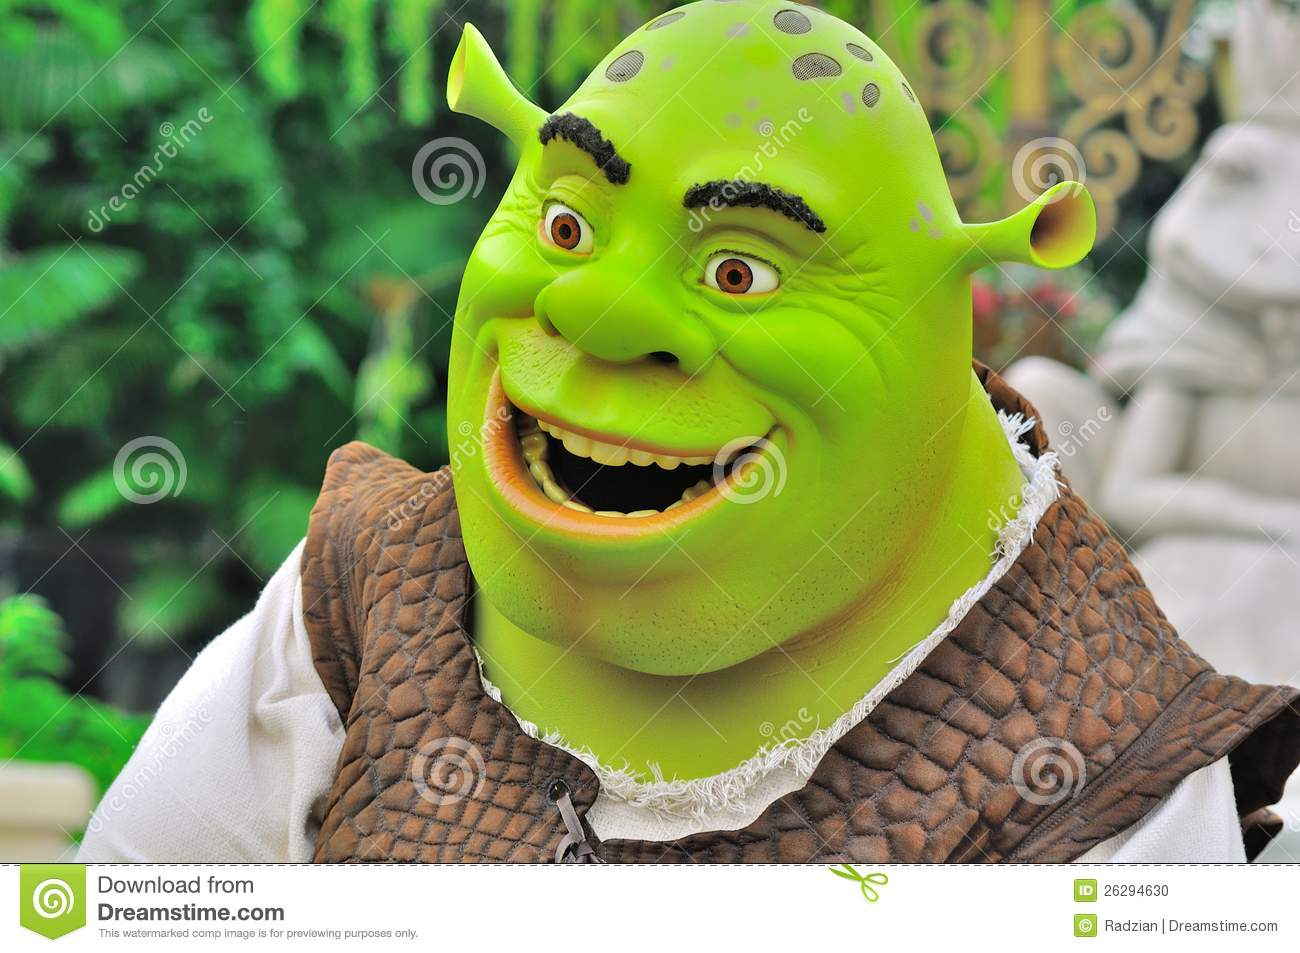 Shrek 2 Cartoon Characters : Shrek cartoon character editorial image